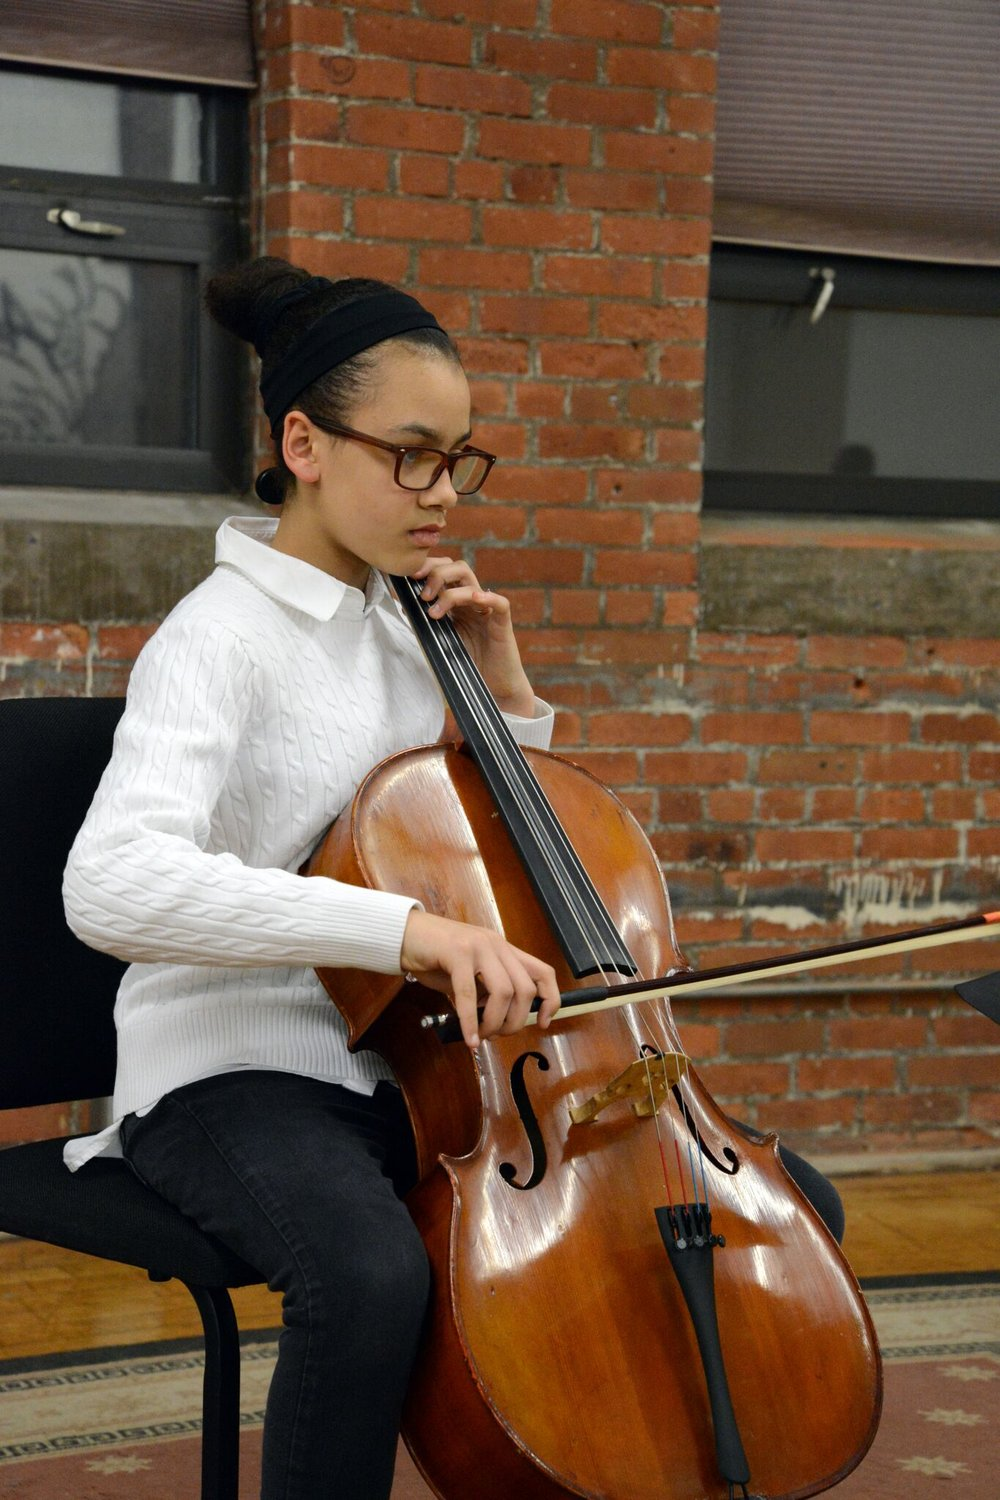 Alexis performing at her studio recital in 2018